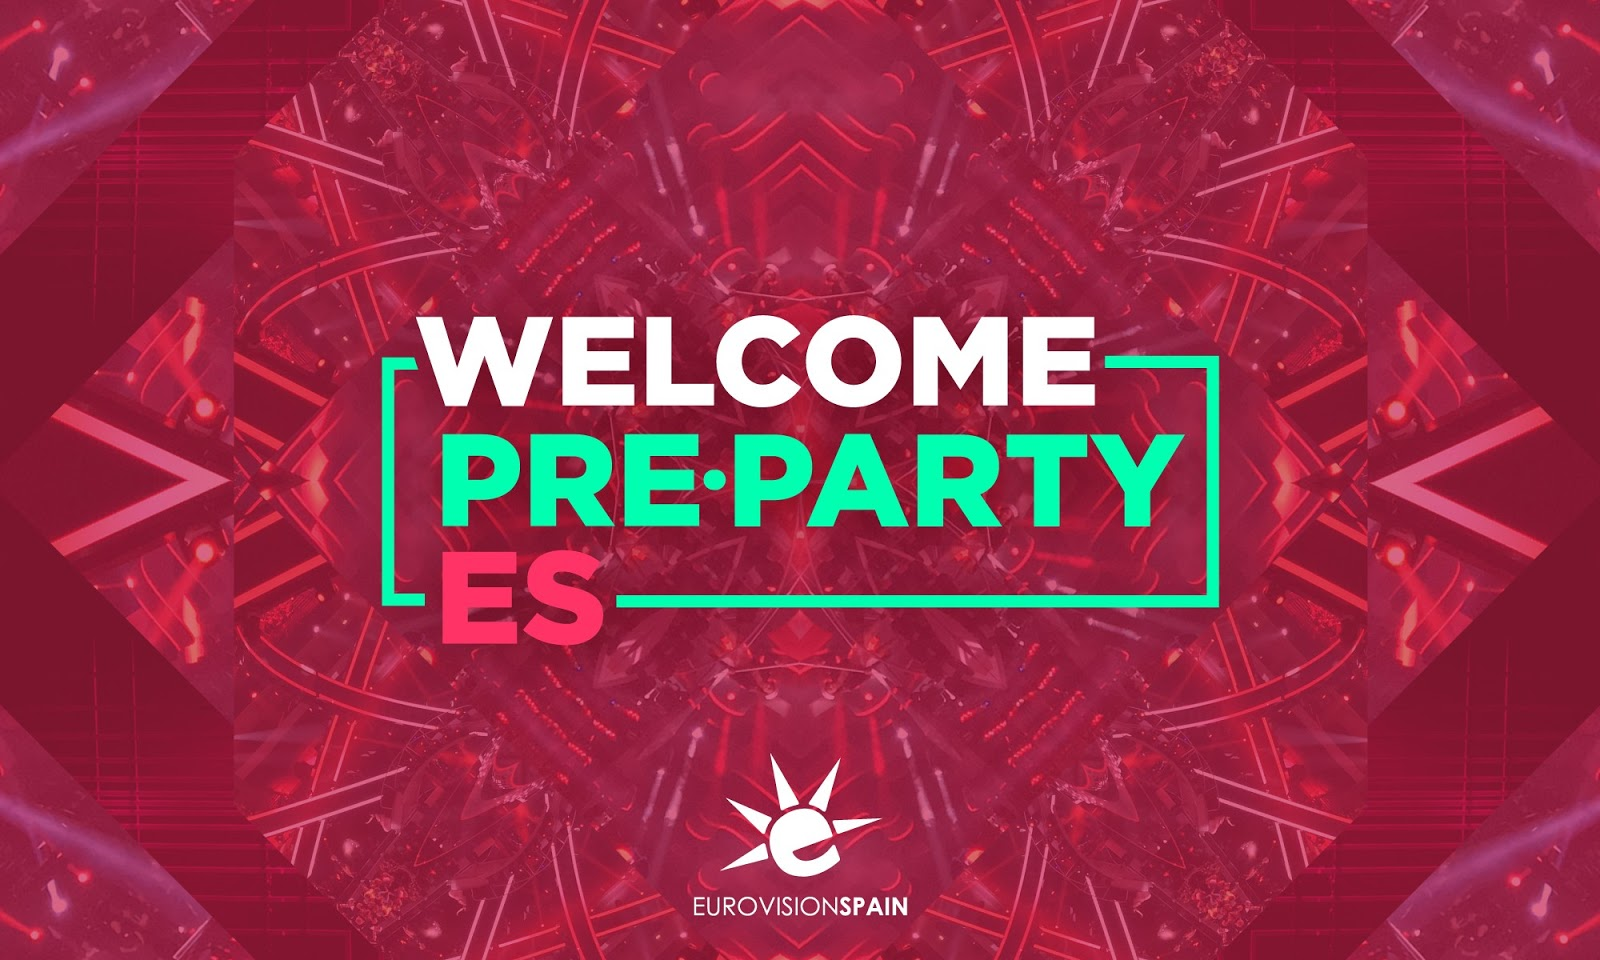 REVIVE LA WELCOME PREPARTY ES 2019